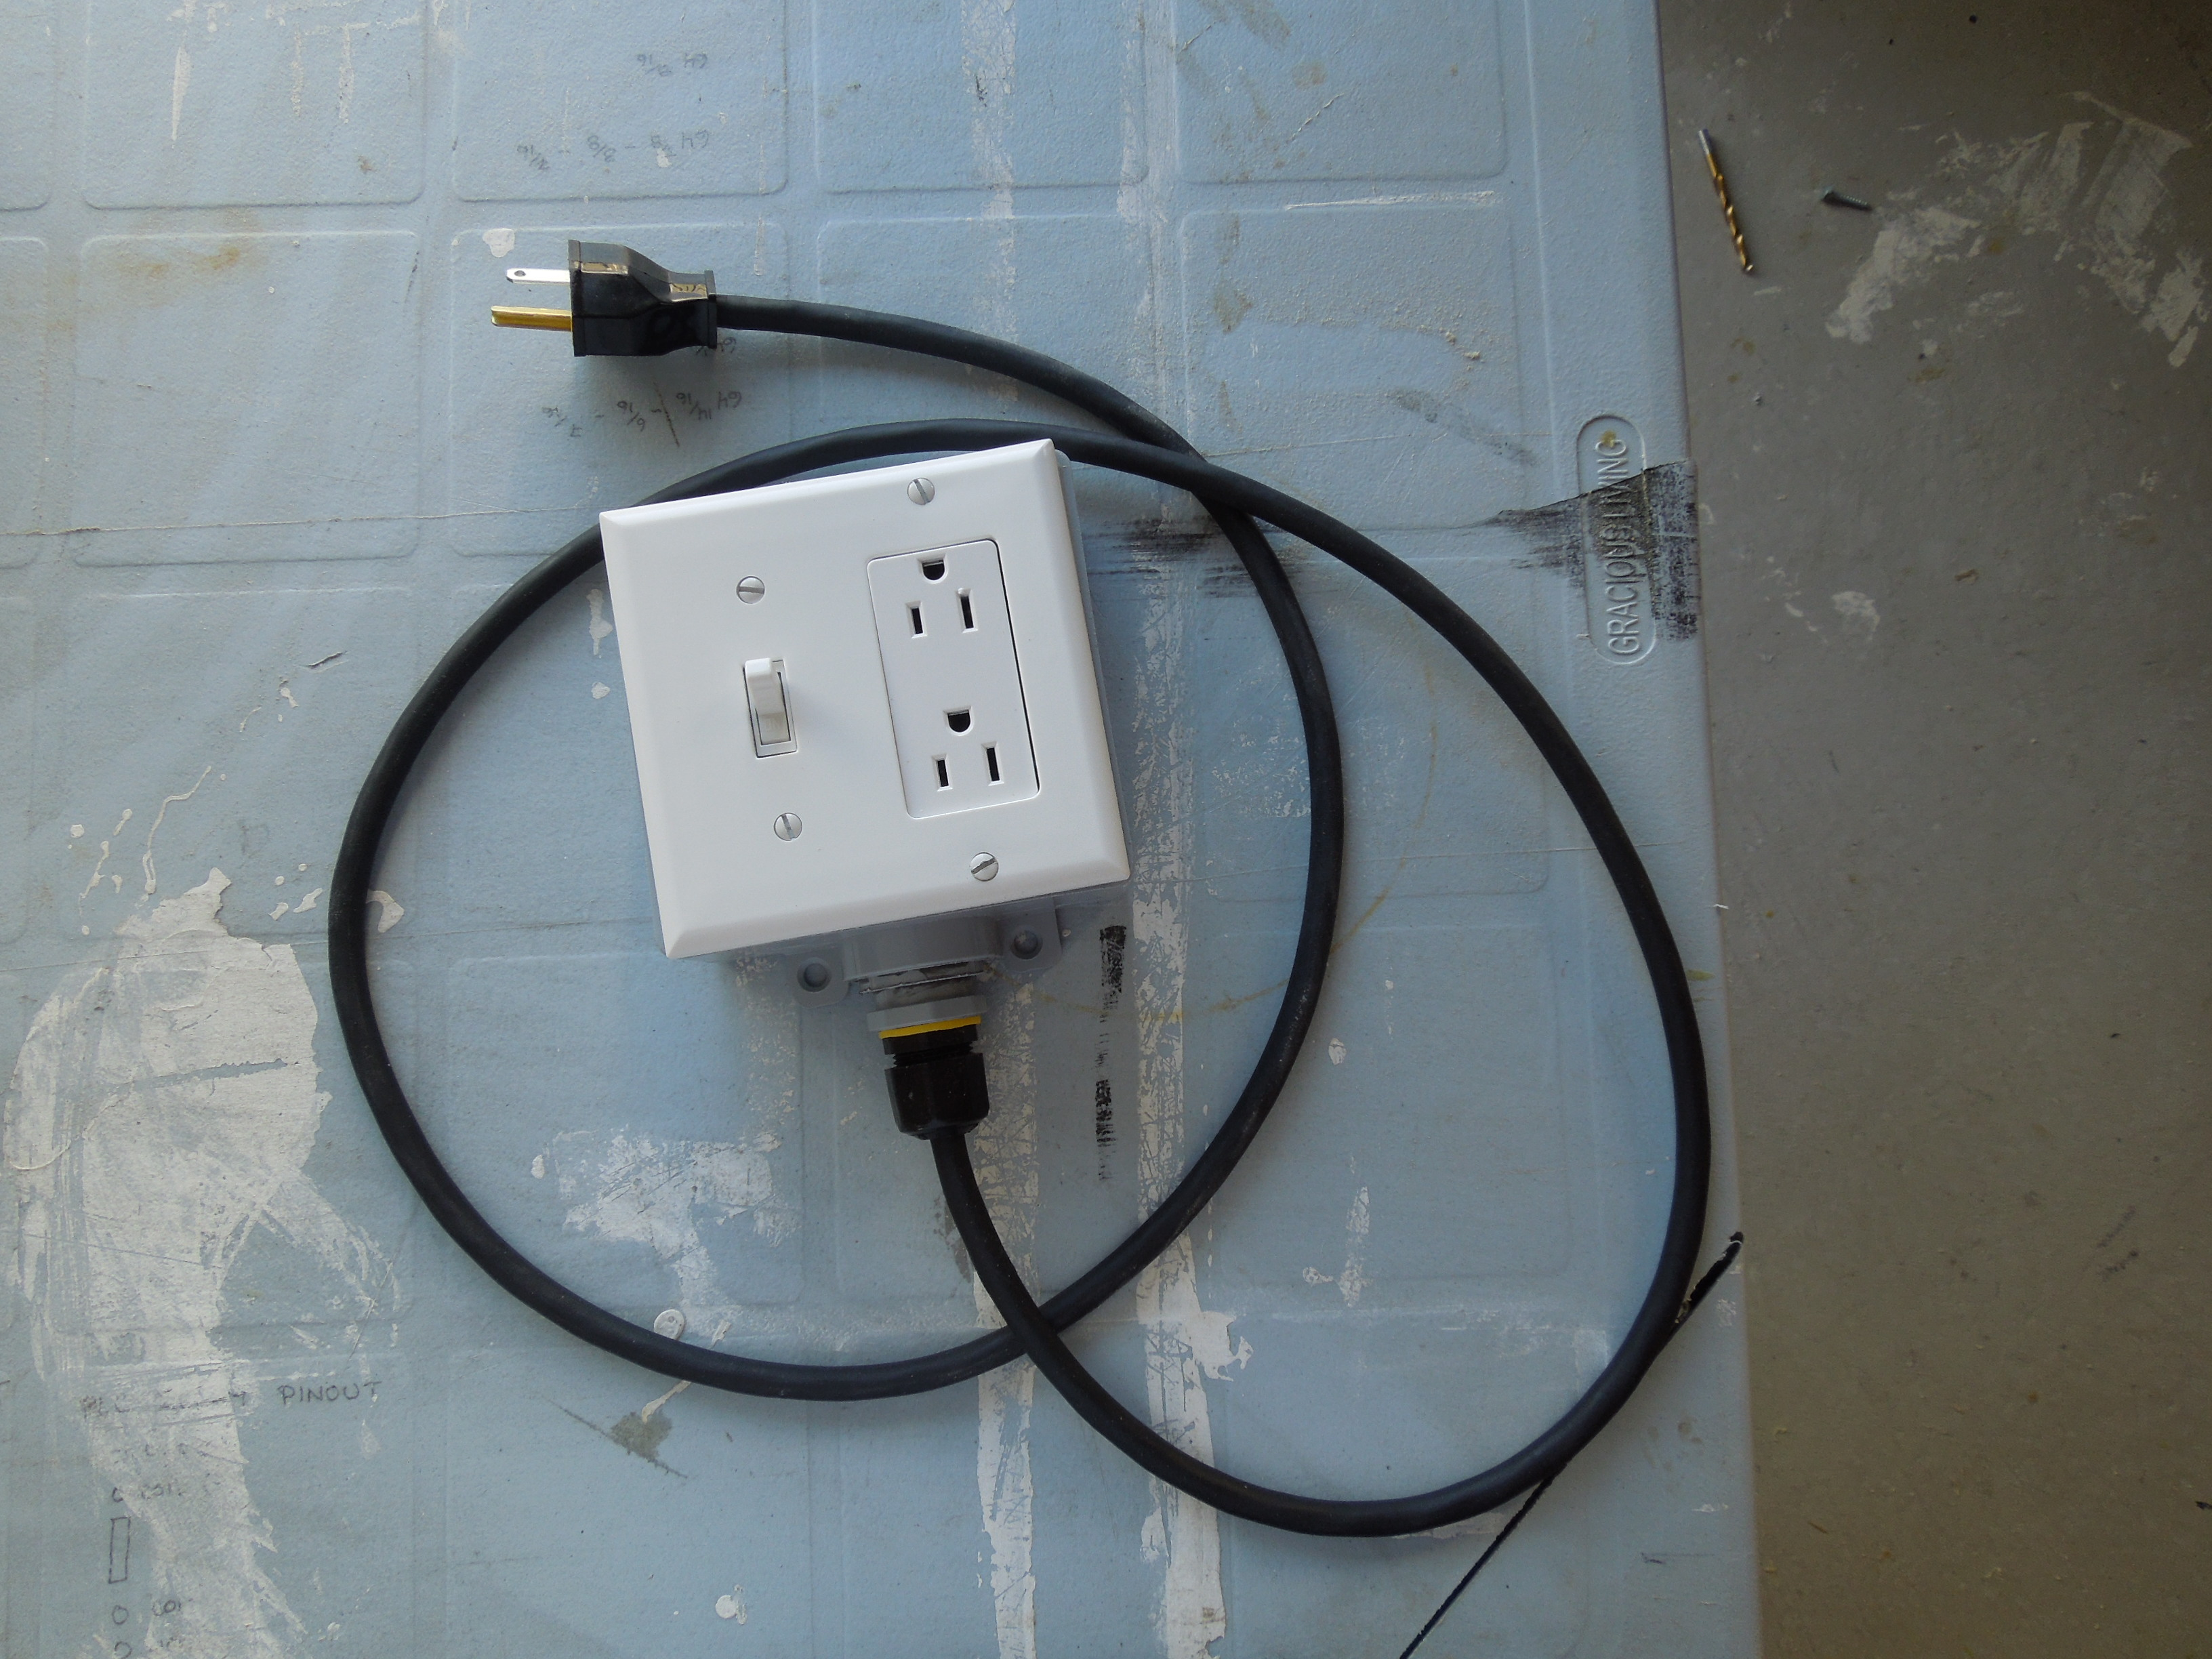 Wiring Color Code Australia Electrical Wiring Color Code